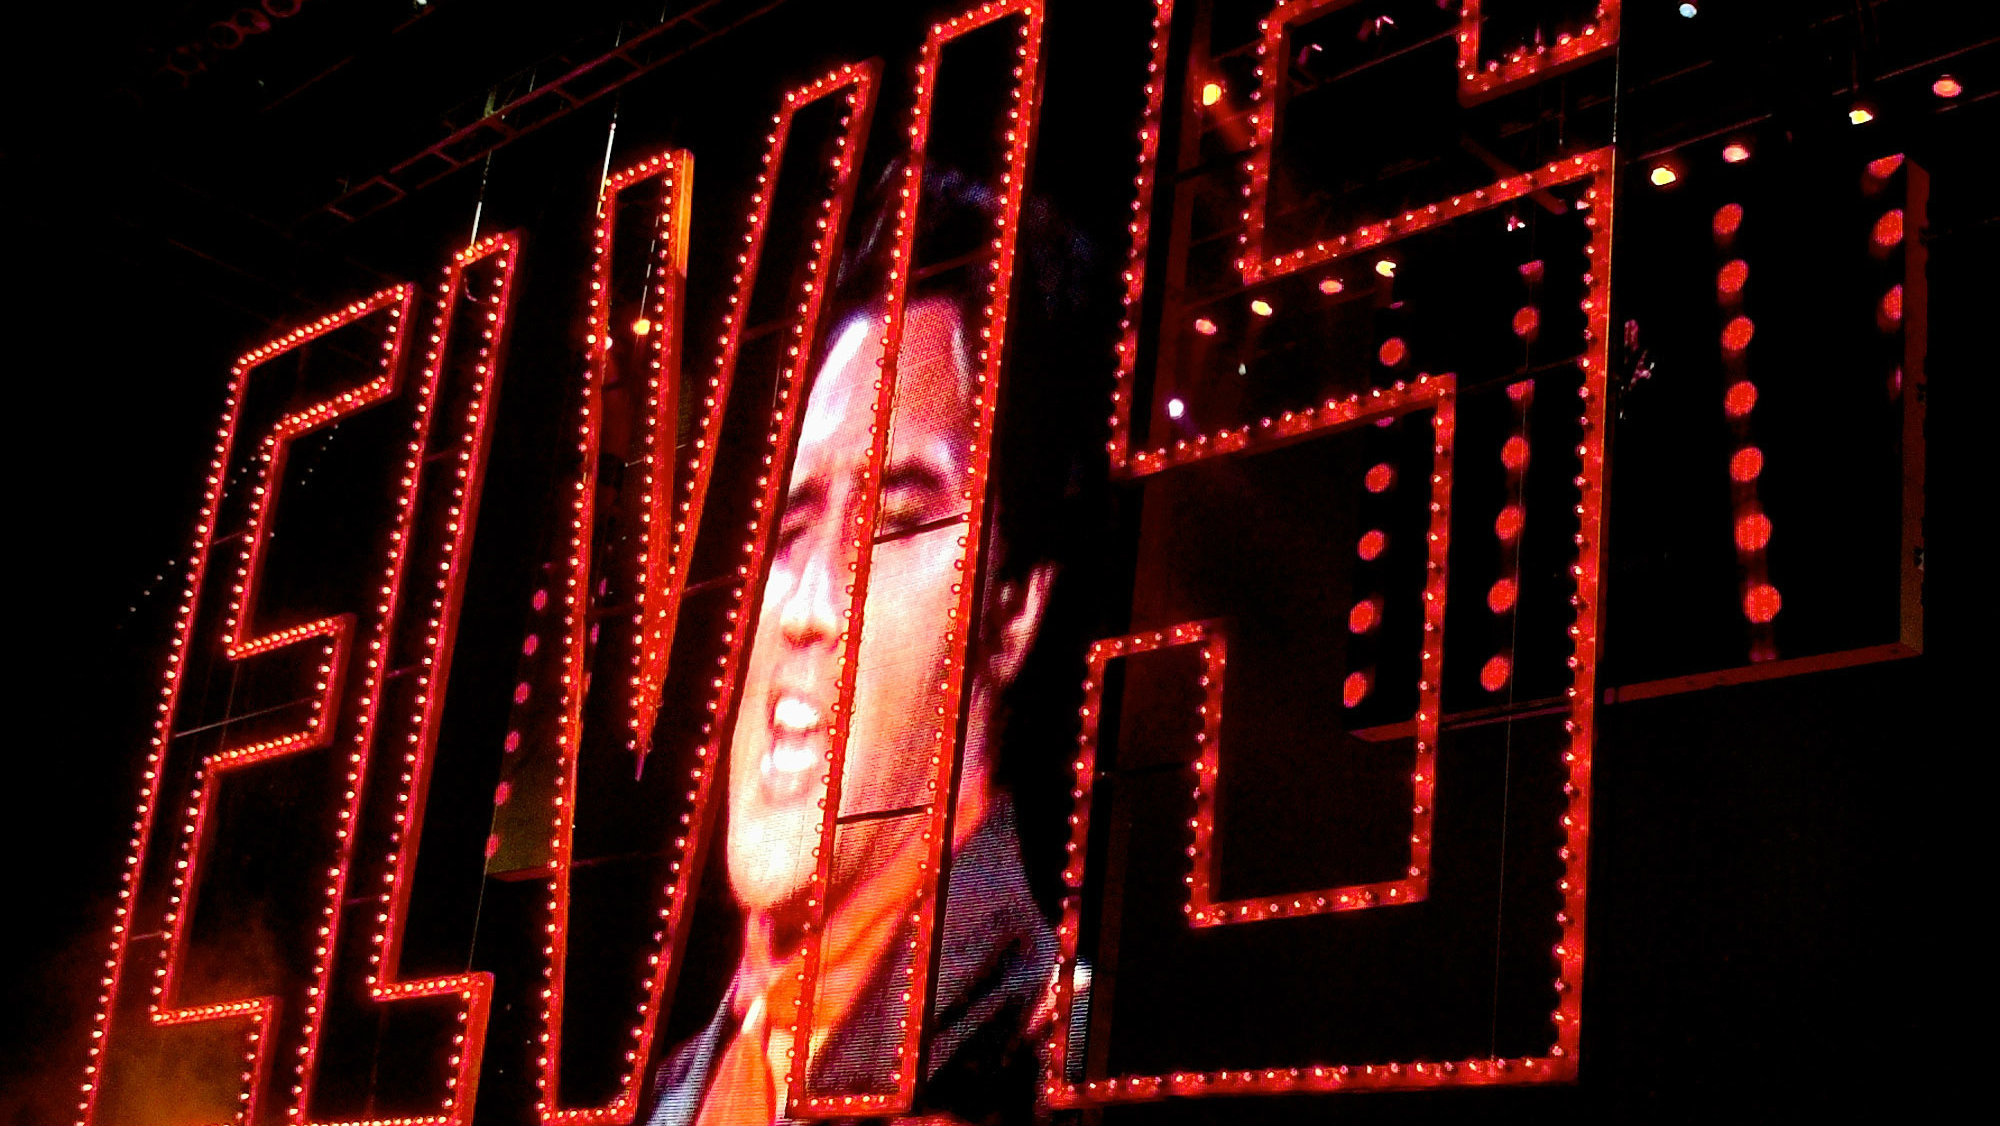 Video of Elvis Presley singing as his band plays below at the start of the Elvis Presley 25th Anniversary Concert in Memphis, Tenn.